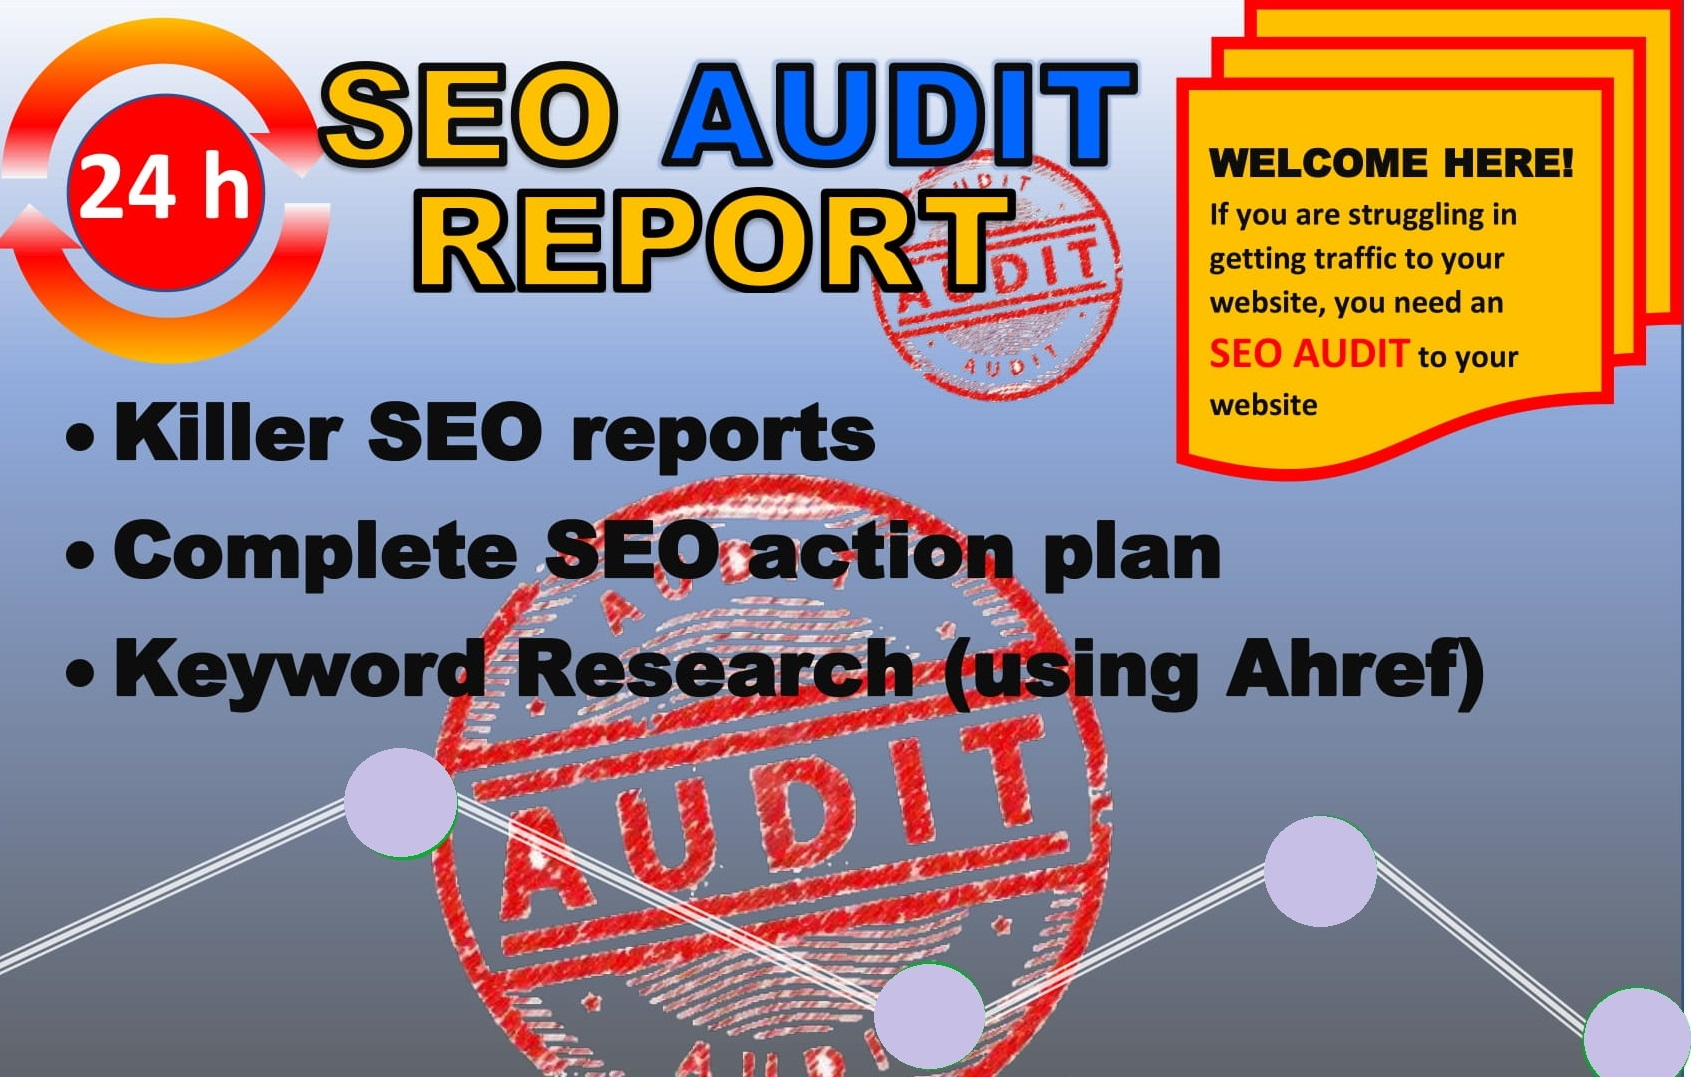 provide detailed SEO report, competitor audit and action plan